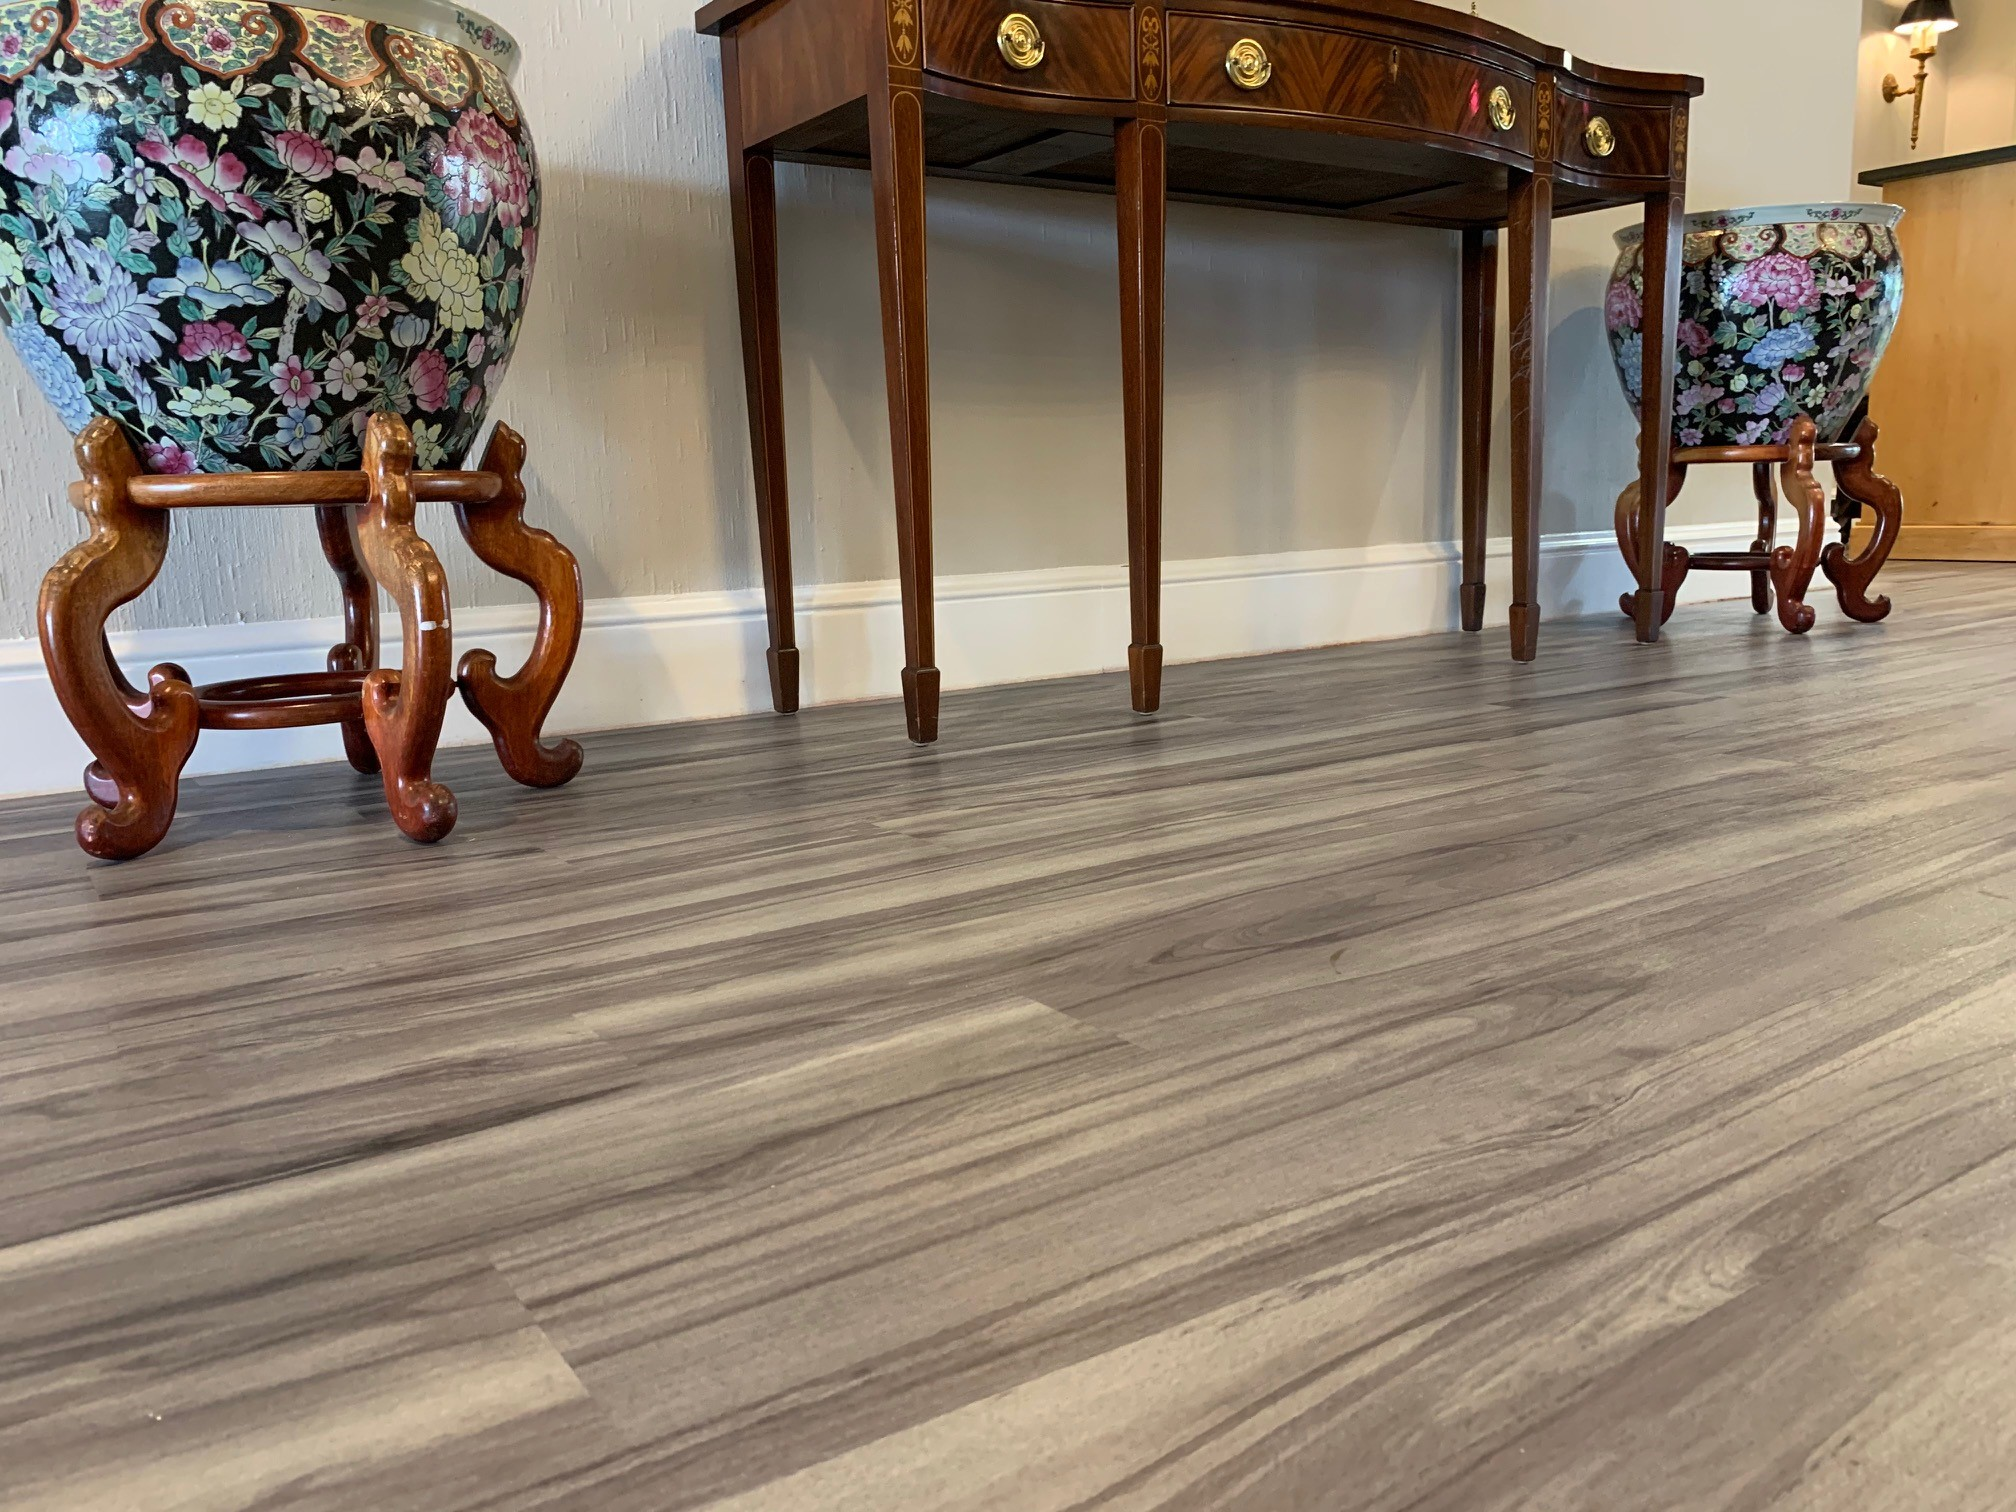 Flooring near a table and two vases